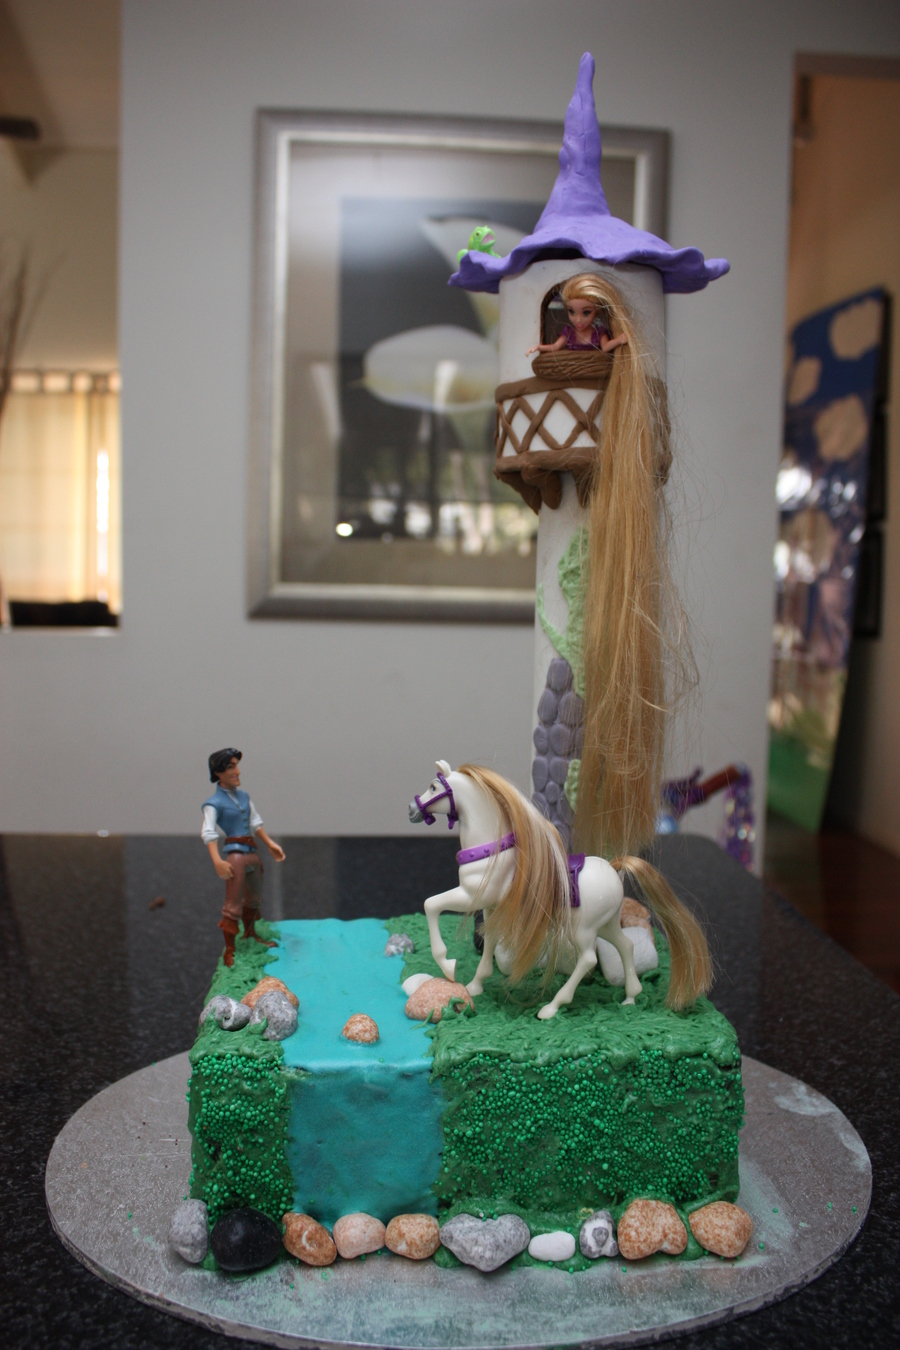 Rapunzel Let Down Your Hair! on Cake Central